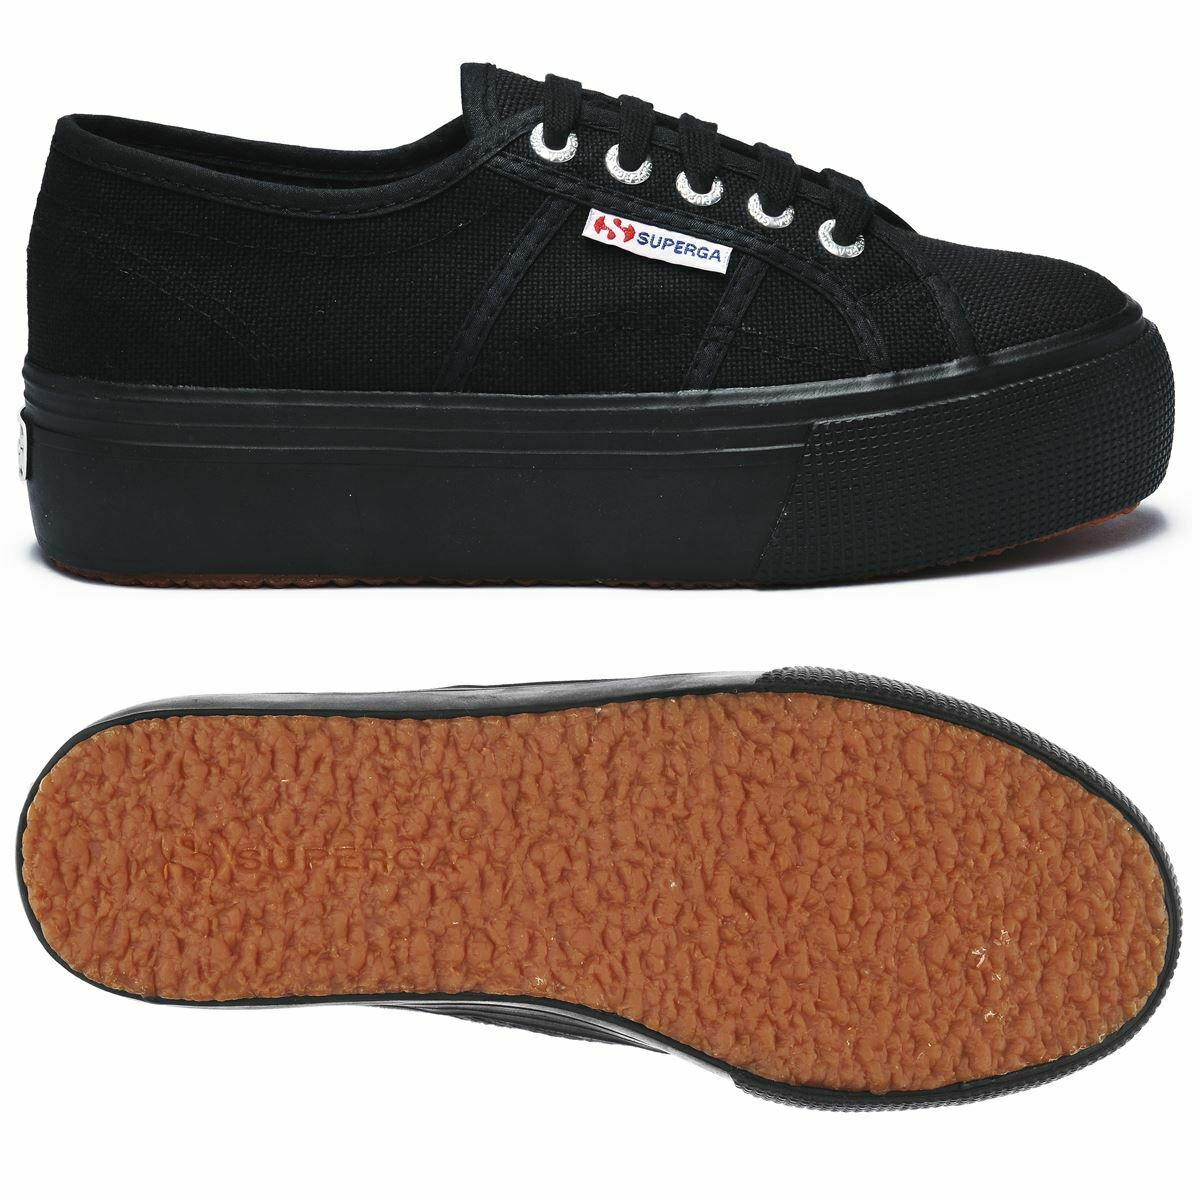 Superga - 2790ACOTW LINEA UP AND DOWN - Scarpe Donna - Full nero - S0001L0 996